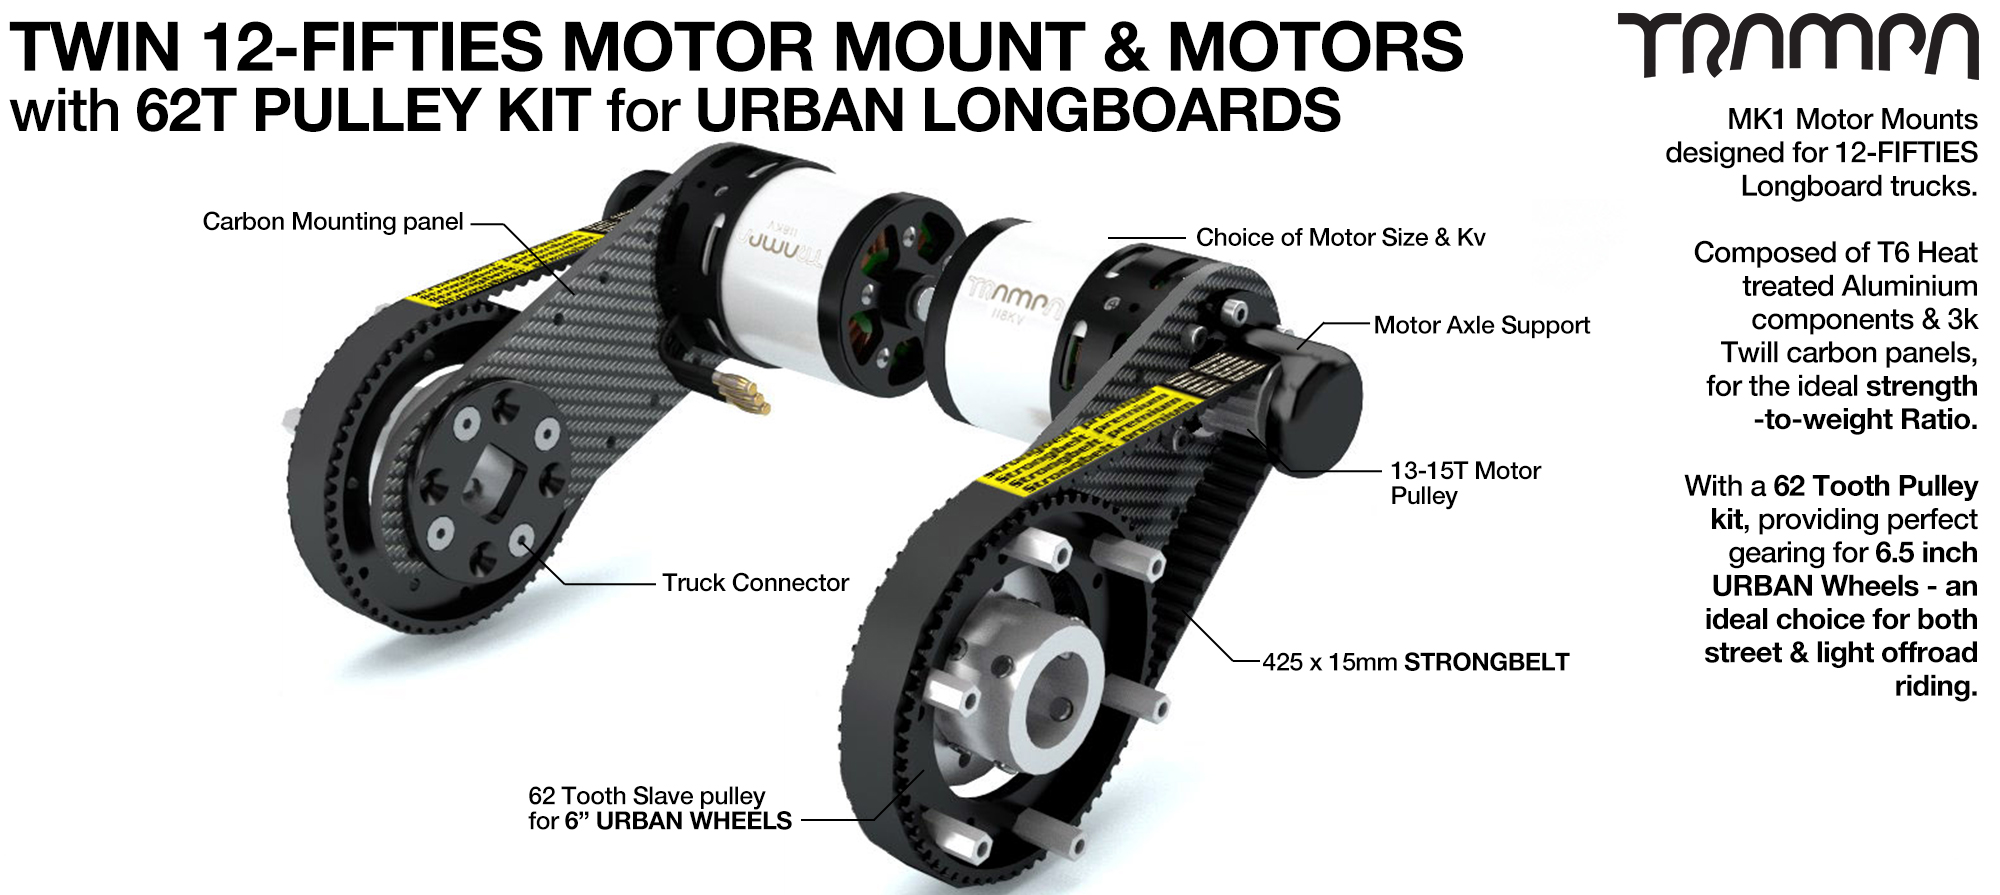 12Fifties CARBON Fibre Motormount Panel with Custom Motor, Motor Axle support & 62 Tooth Pulley Kit for URBAN Wheels TWIN